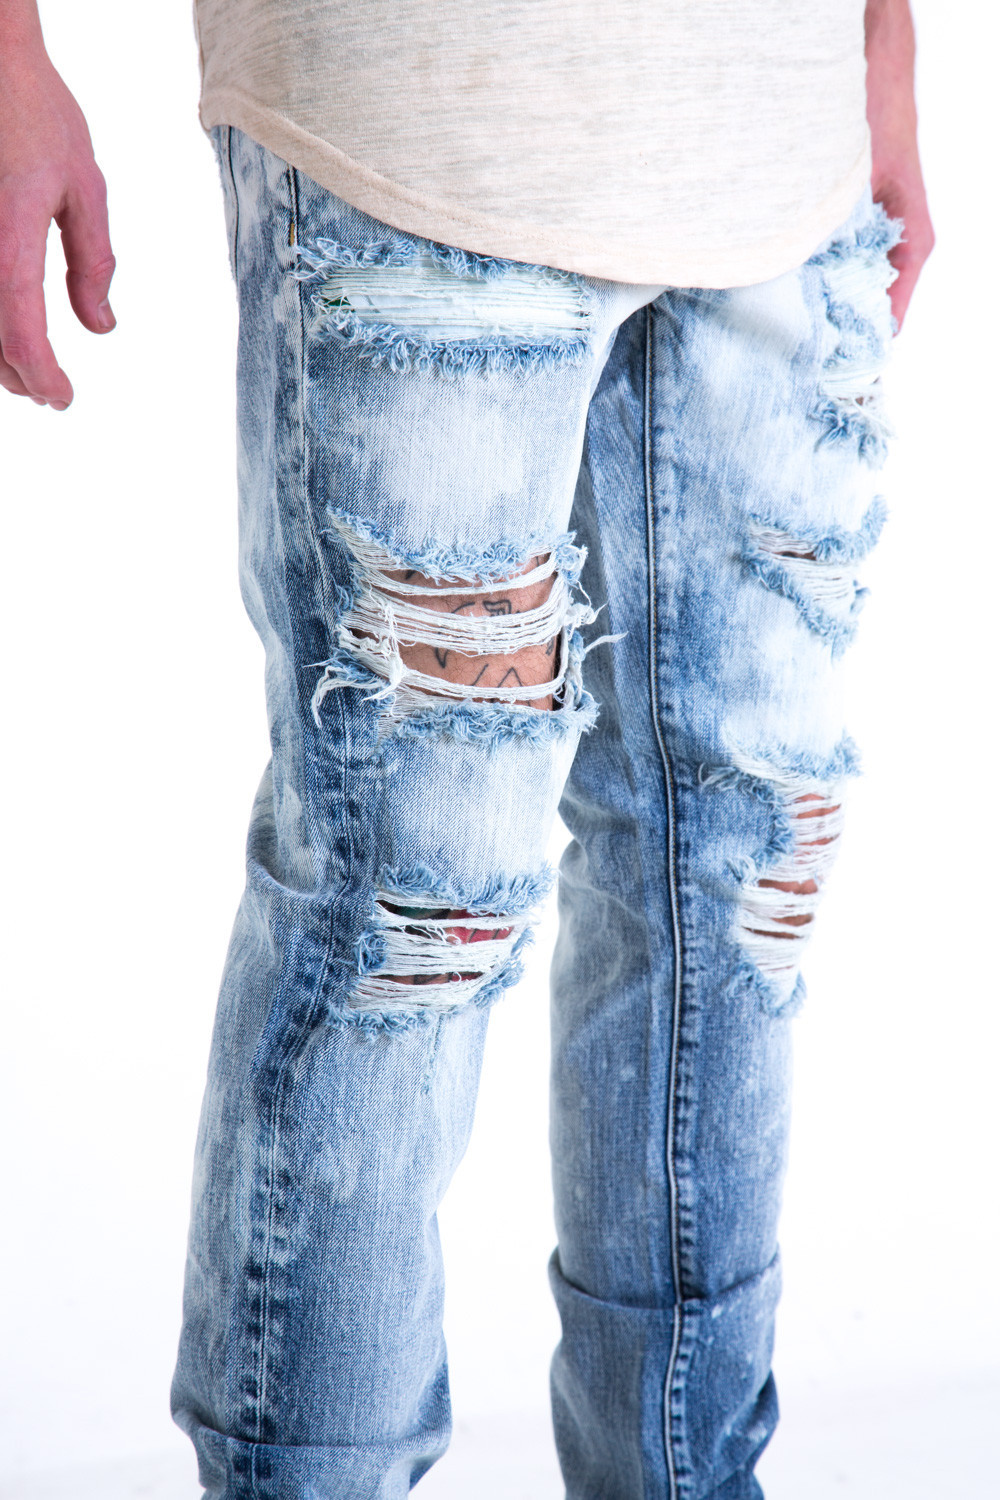 New Men Skinny Jeans 2017 Washed Slim Male Denim Joggers Biker Jeans Homme Hip Hop Ripped Distressed Moto Pants Jeans For Man men s skinny slim denim washed hip hop jeans vintage ripped biker classic slim pants relaxed fit bootcut jeans mens